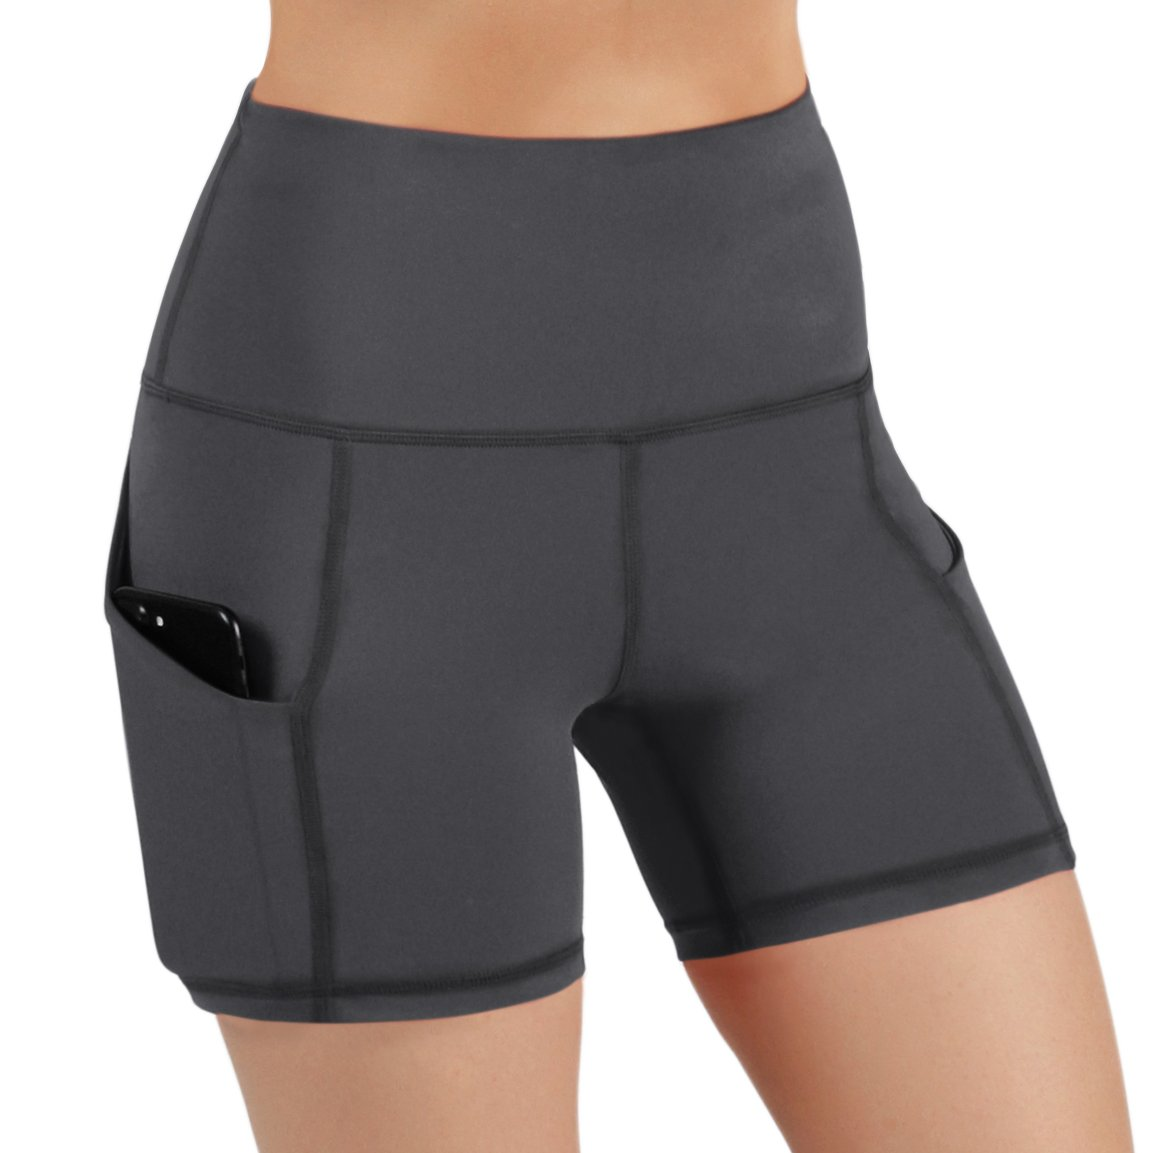 ODODOS High Waist Out Pocket Yoga Short Tummy Control Workout Running Athletic Non See-Through Yoga Shorts,Gray,X-Small